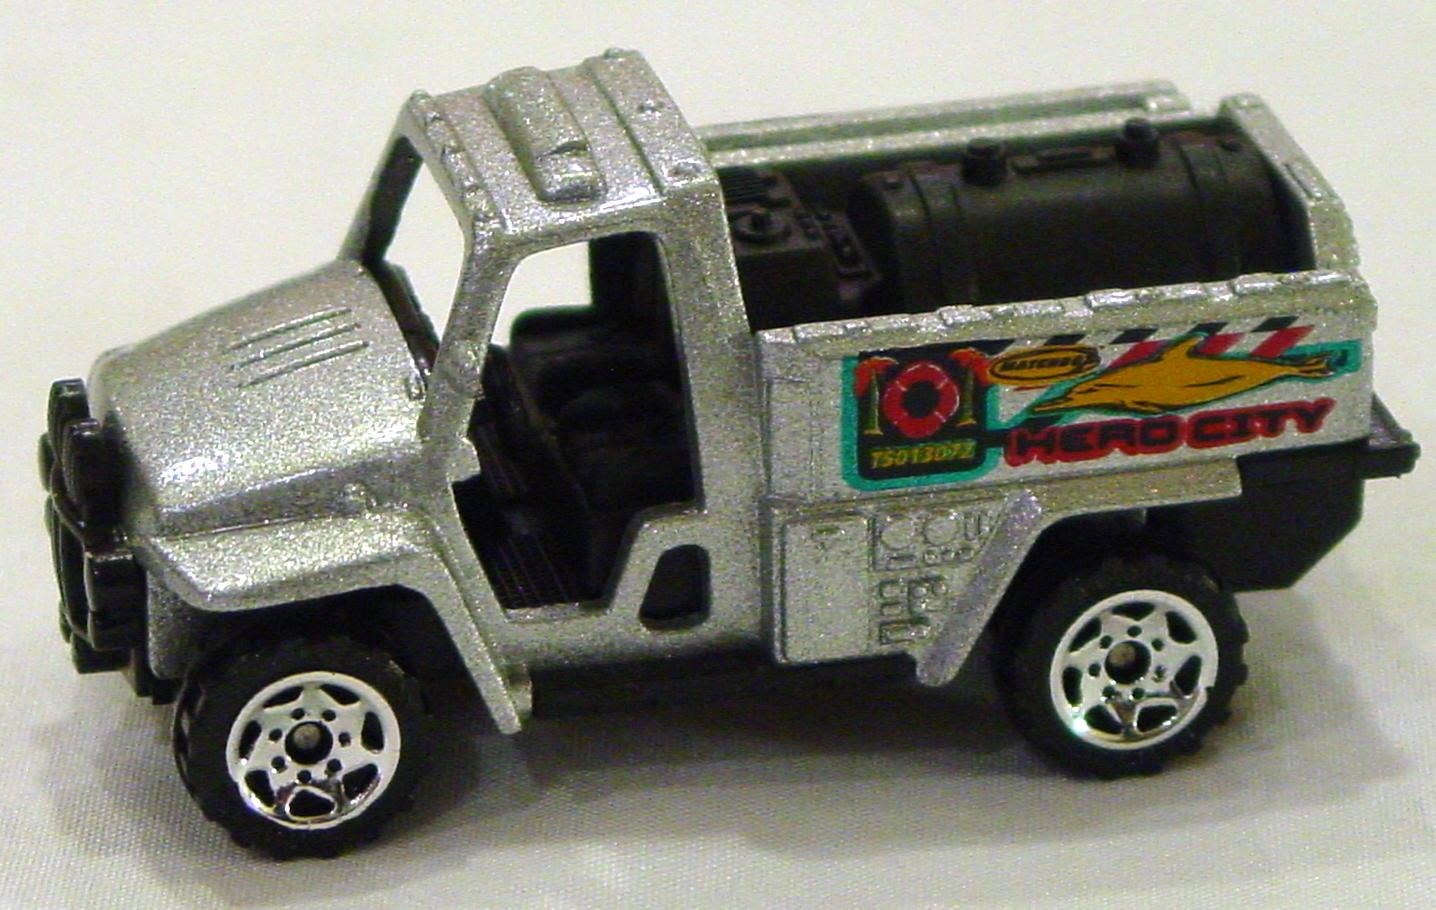 Offshore SuperFast 67 K 7 - 2004 37 Foam Fire Truck met Silver Hero City dolphin